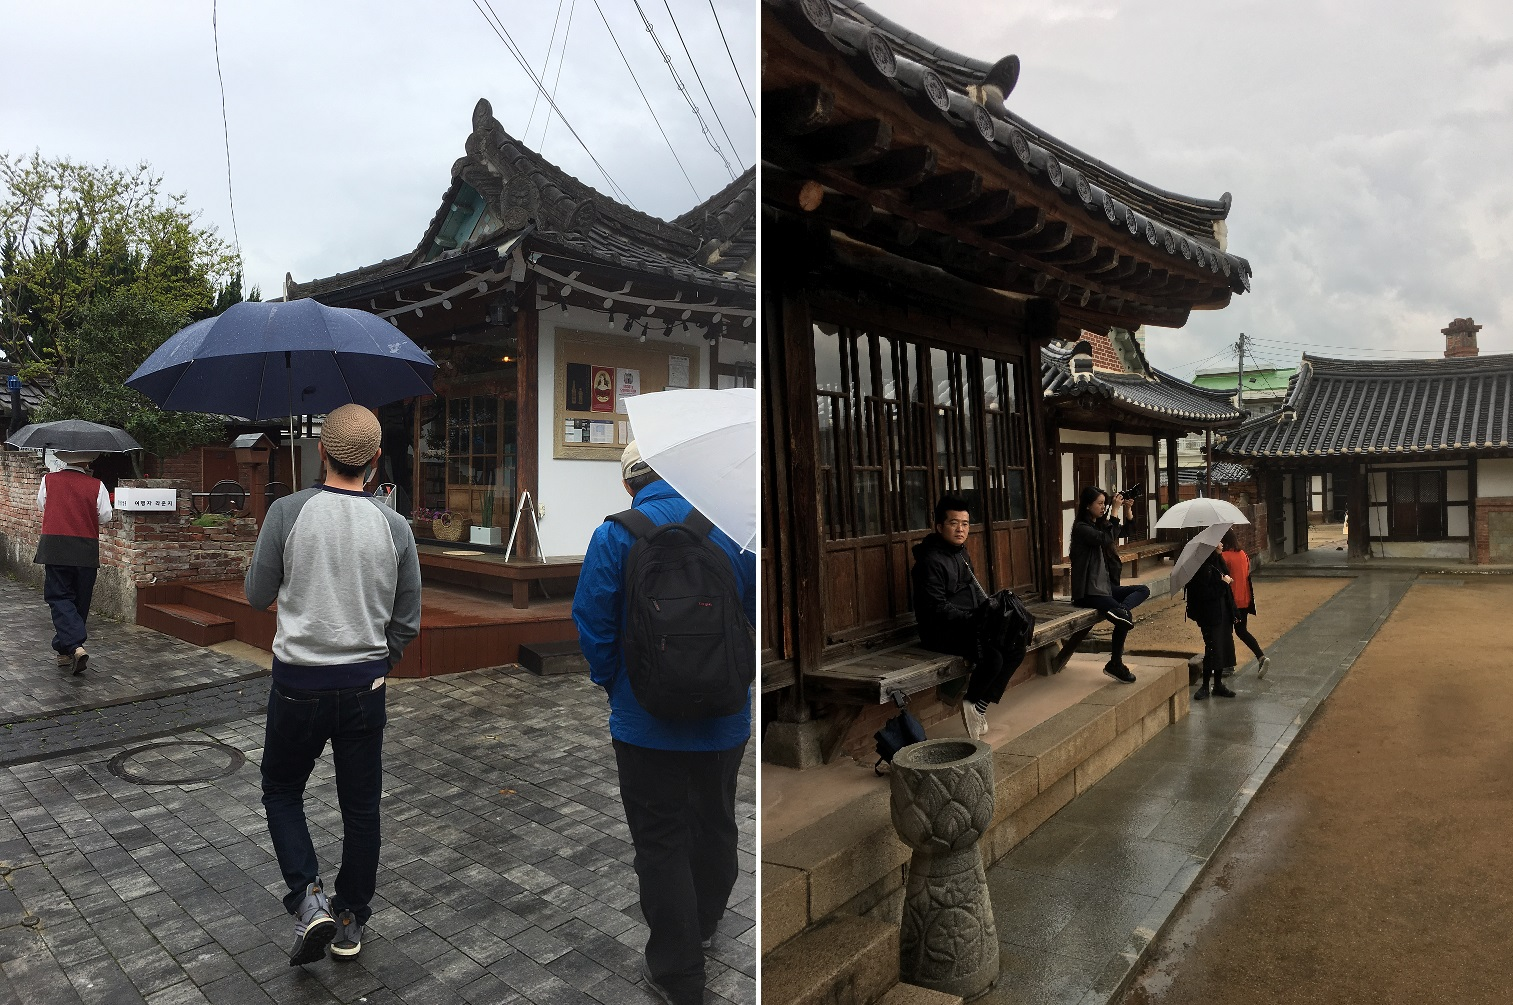 People with umbrellas walk through traditional Korean buildings